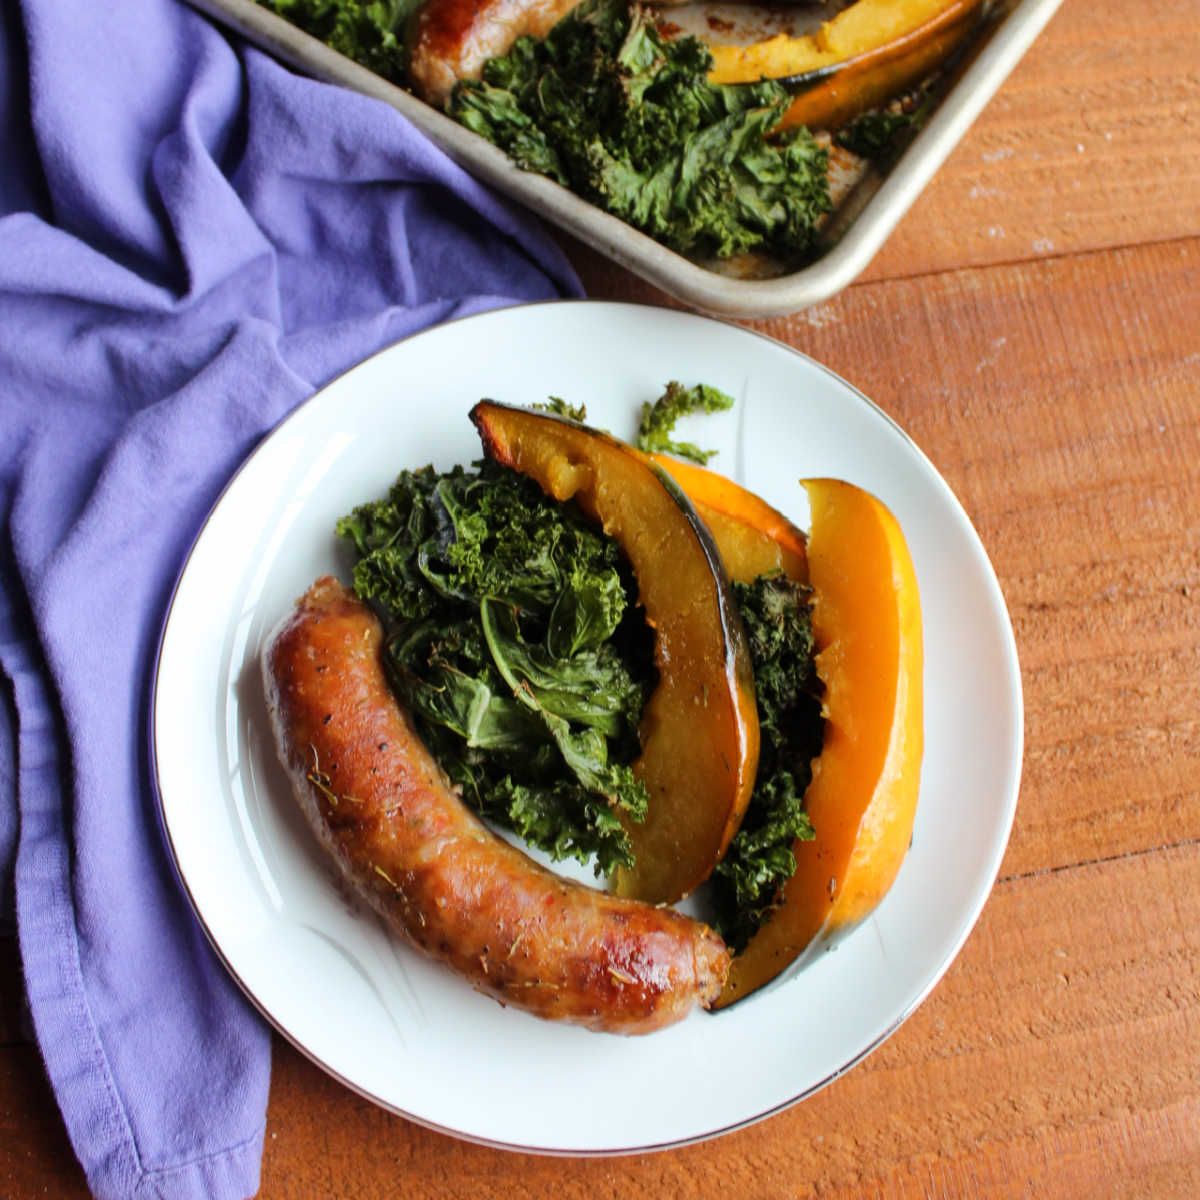 plate of roasted Italian sausage, acorn squash and kale ready to eat